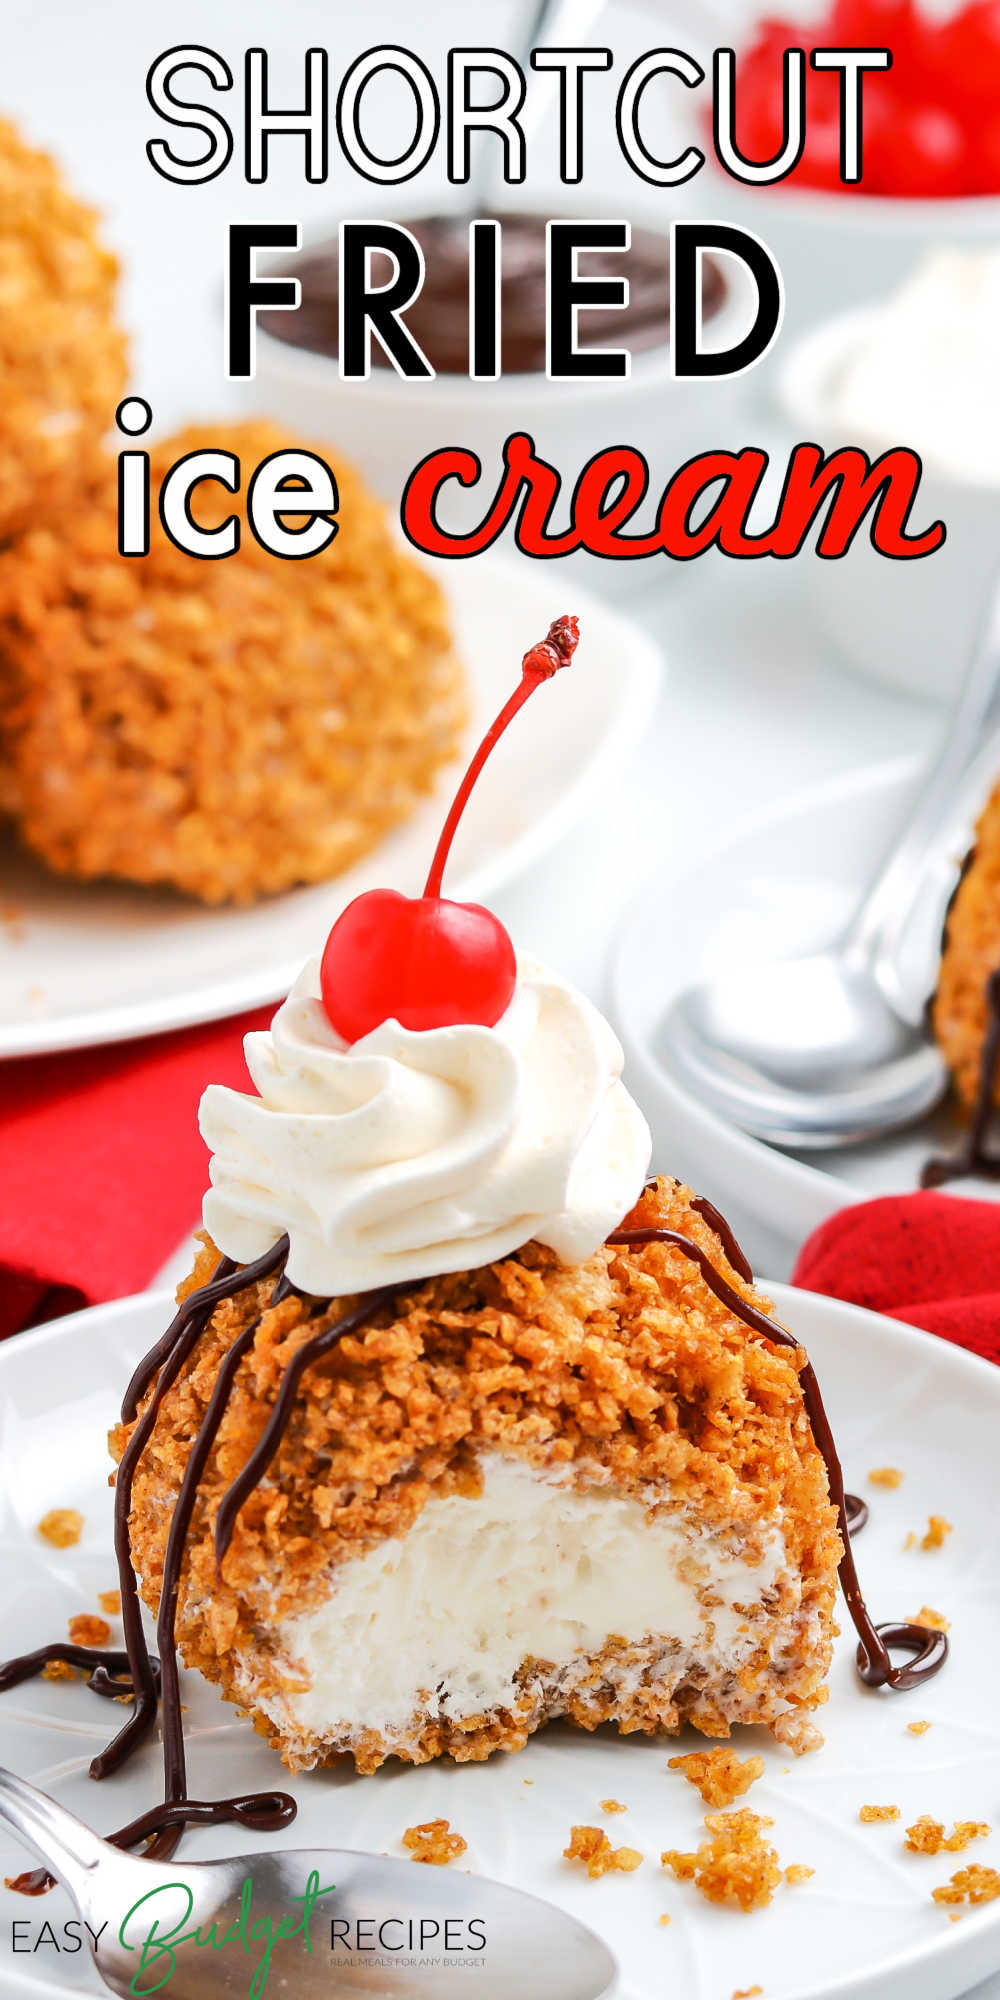 This Shortcut Fried Ice Cream recipe is an easy dessert that's an impressive way to end any meal. Grab the kids, because they'll love making this recipe! via @easybudgetrecipes